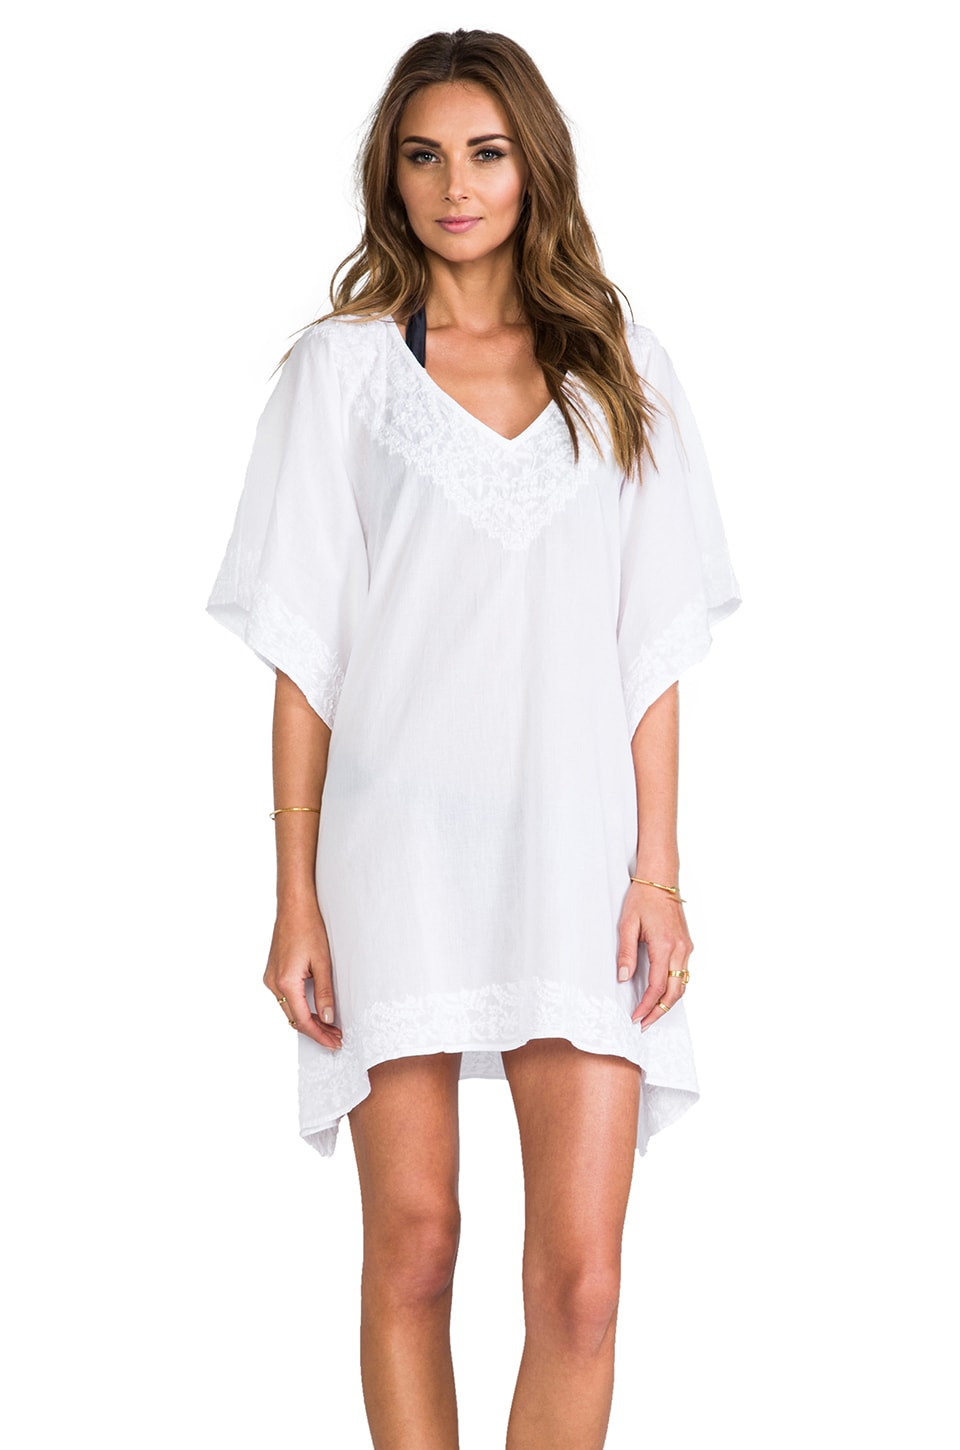 Vix Swimwear Iamandu Caftan in Solid White